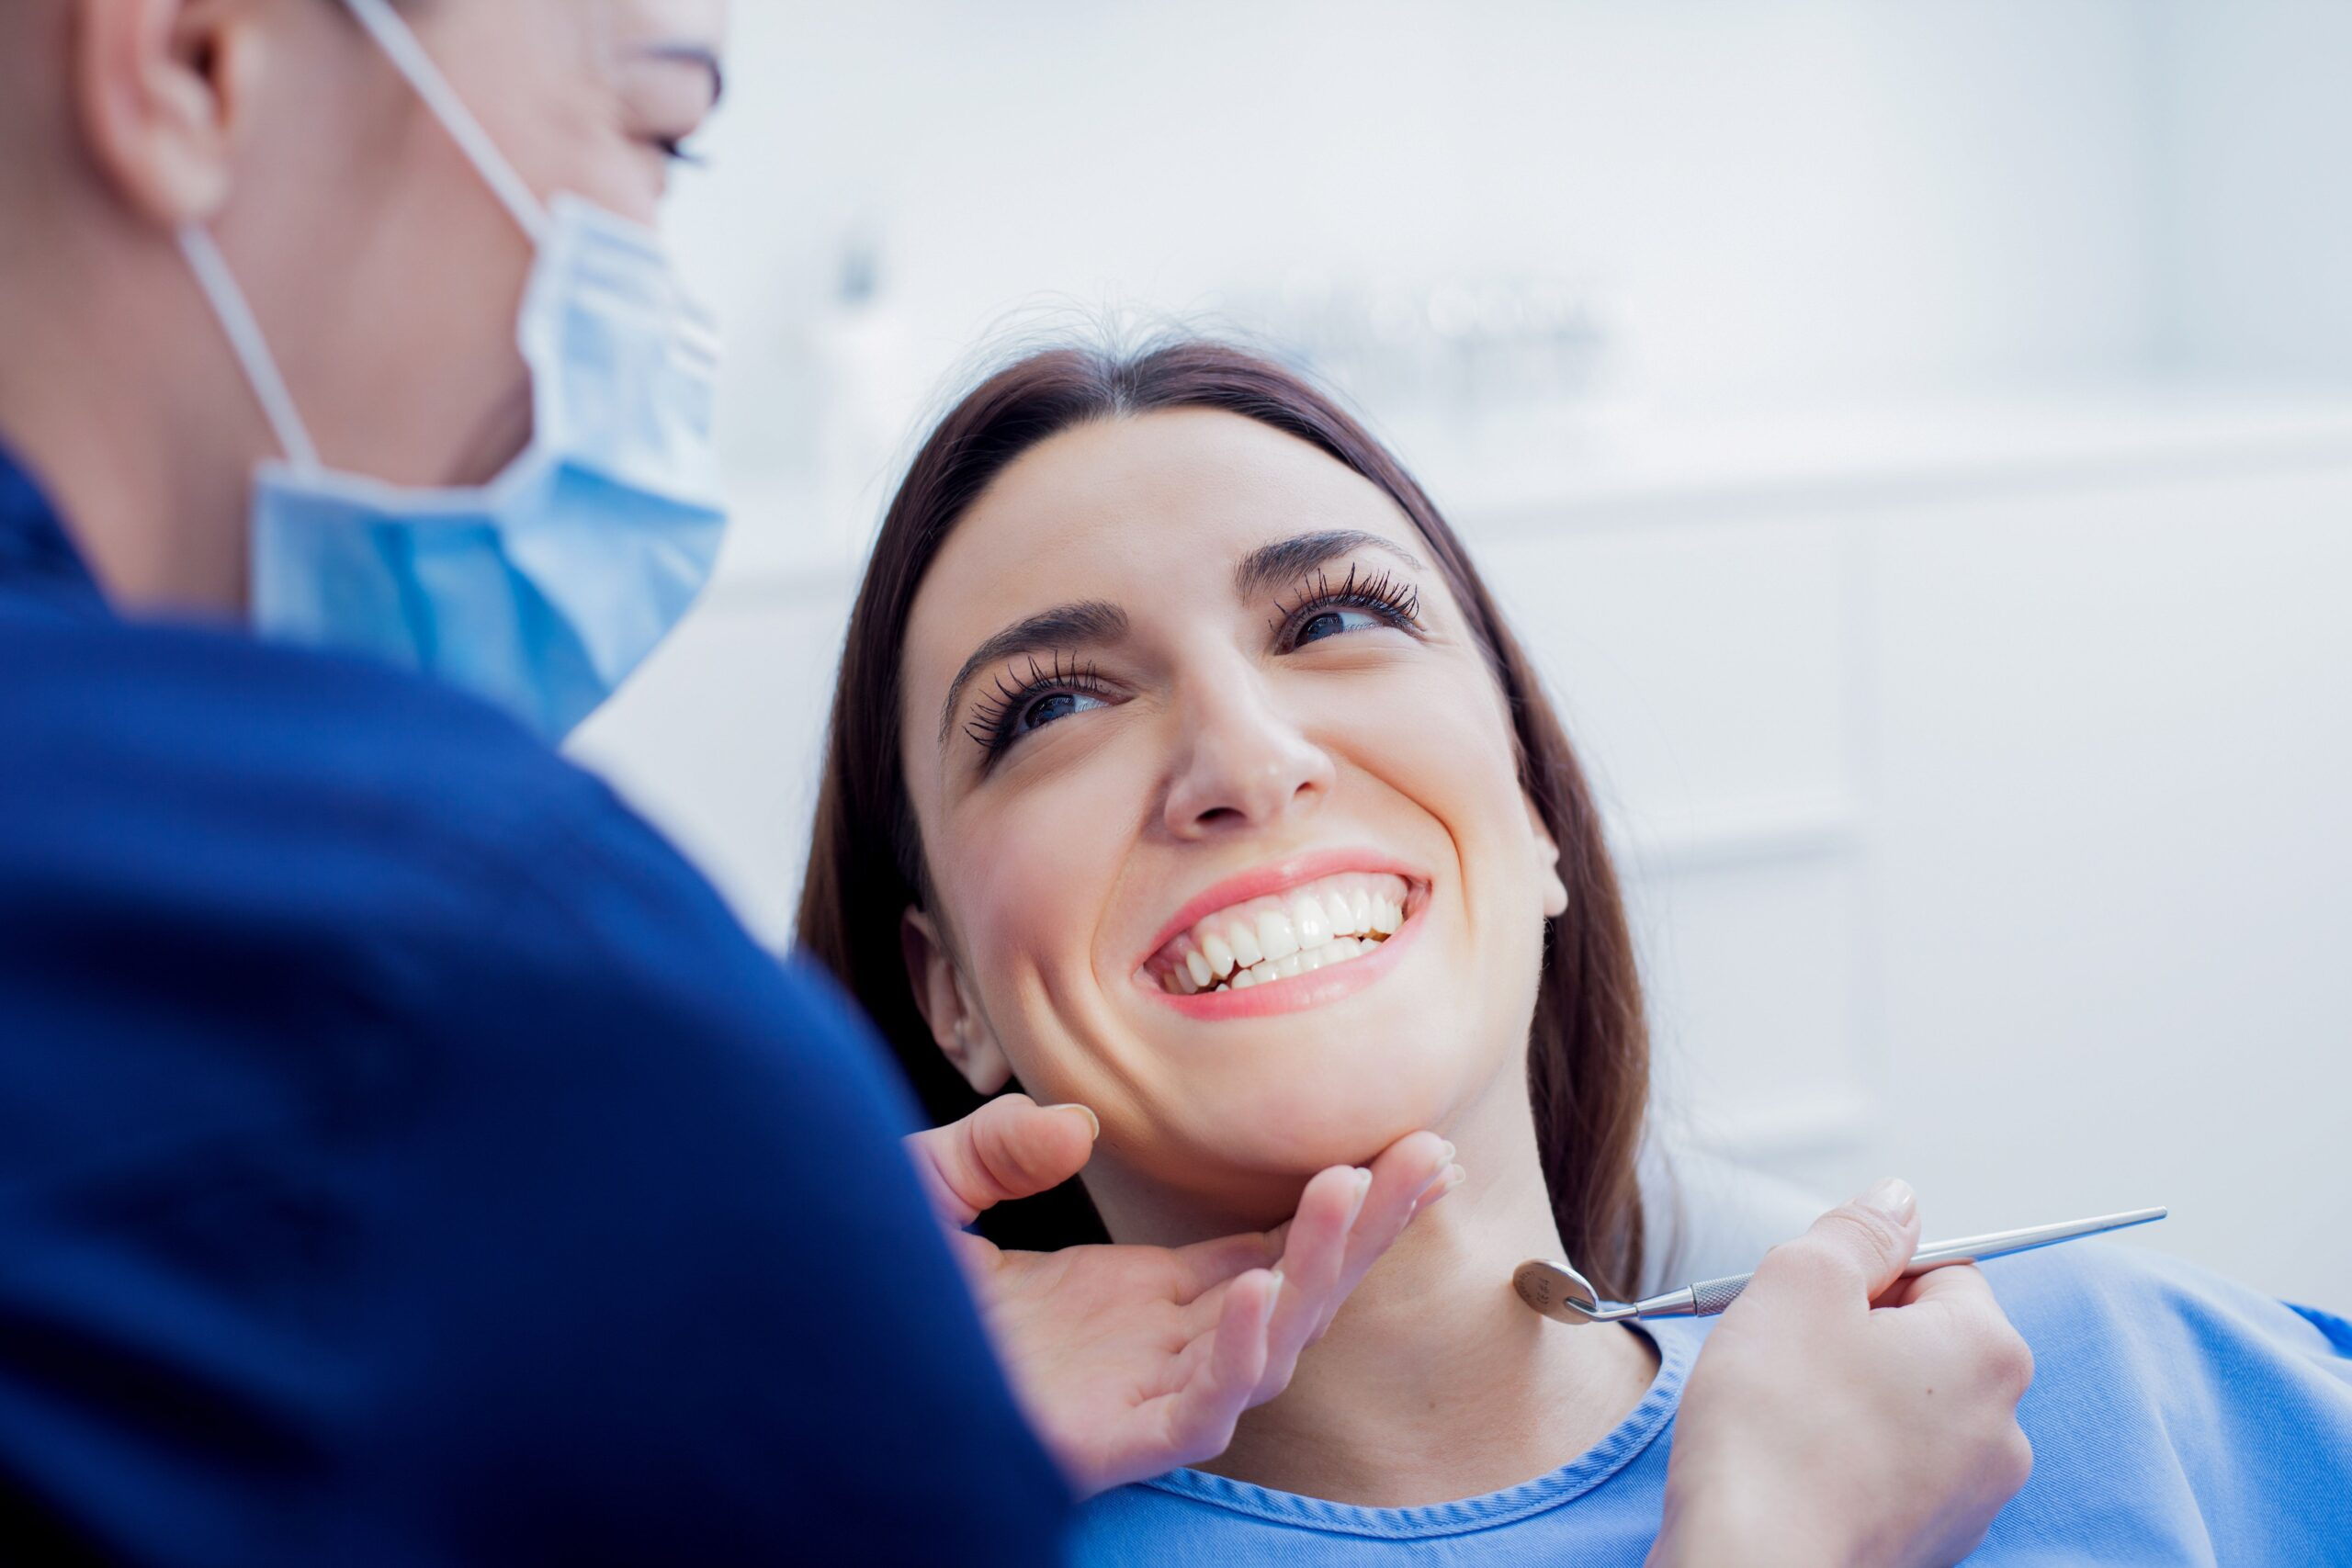 51031 Dentist | Do I Really Need an Exam?